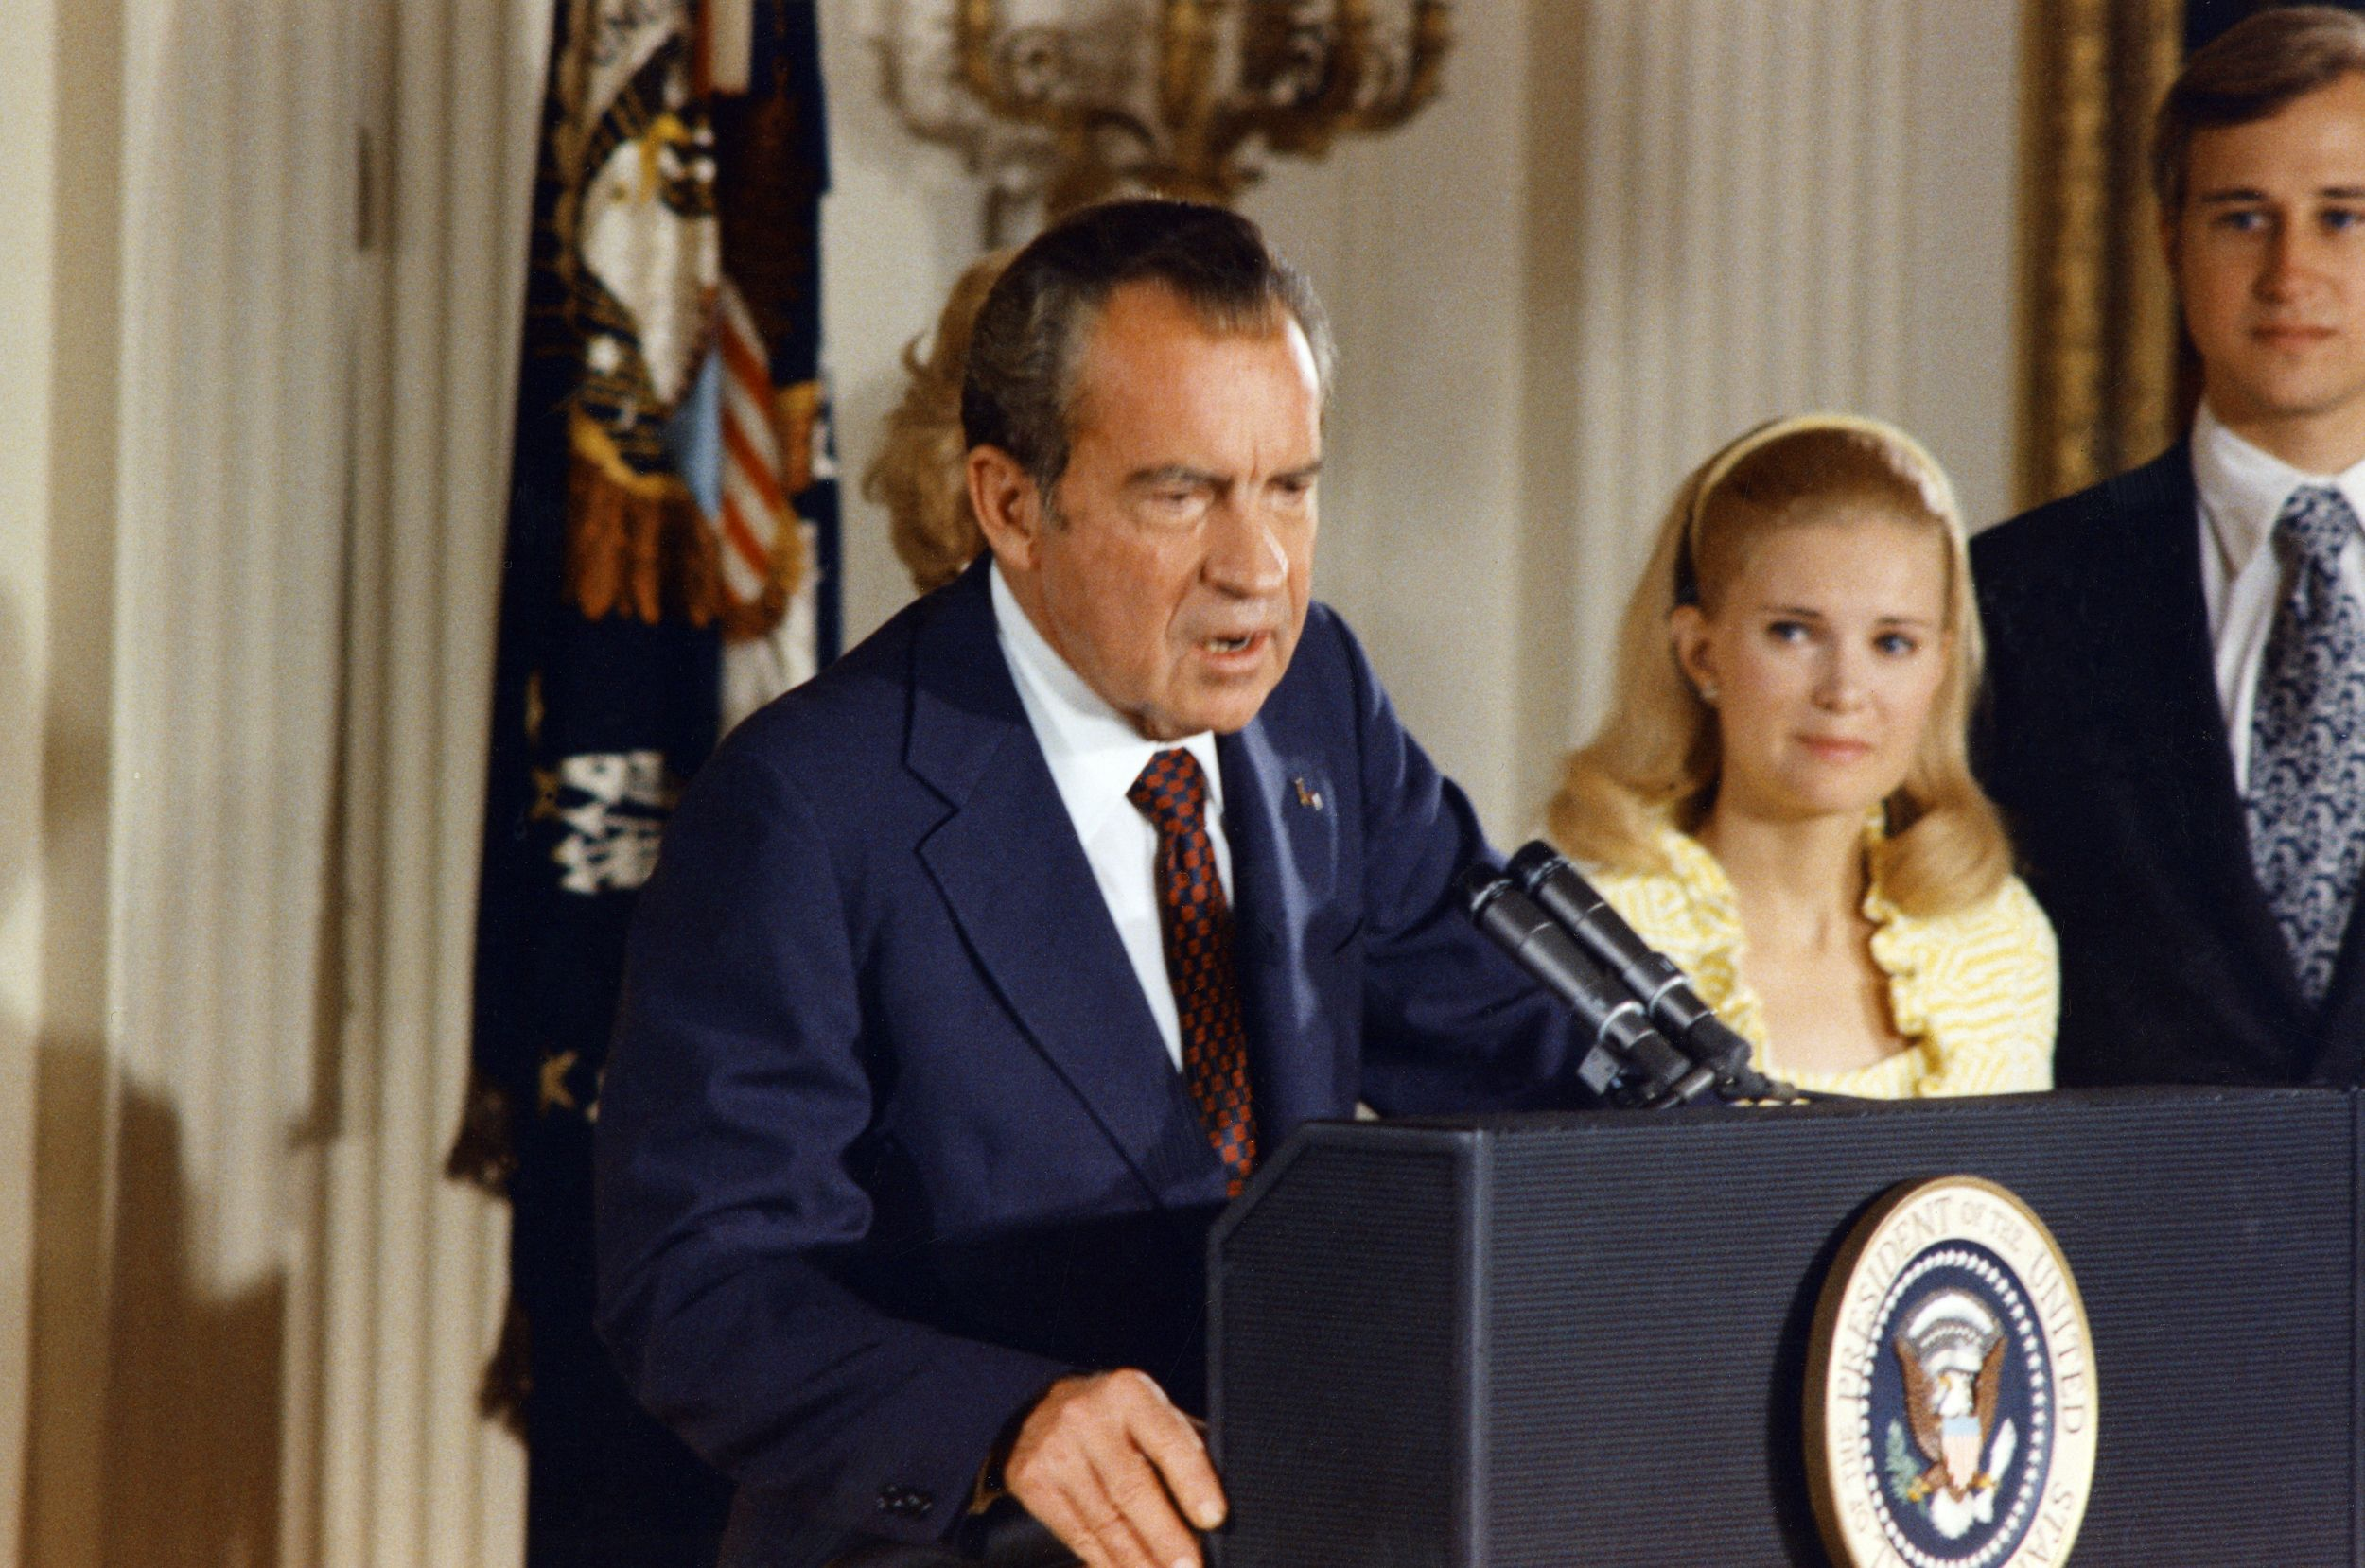 File photo dated 09 August 1974 of the 37th President of the United States, Richard Nixon, as he bids farewell to the White House staff. WHITE HOUSE/AFP/Getty Images